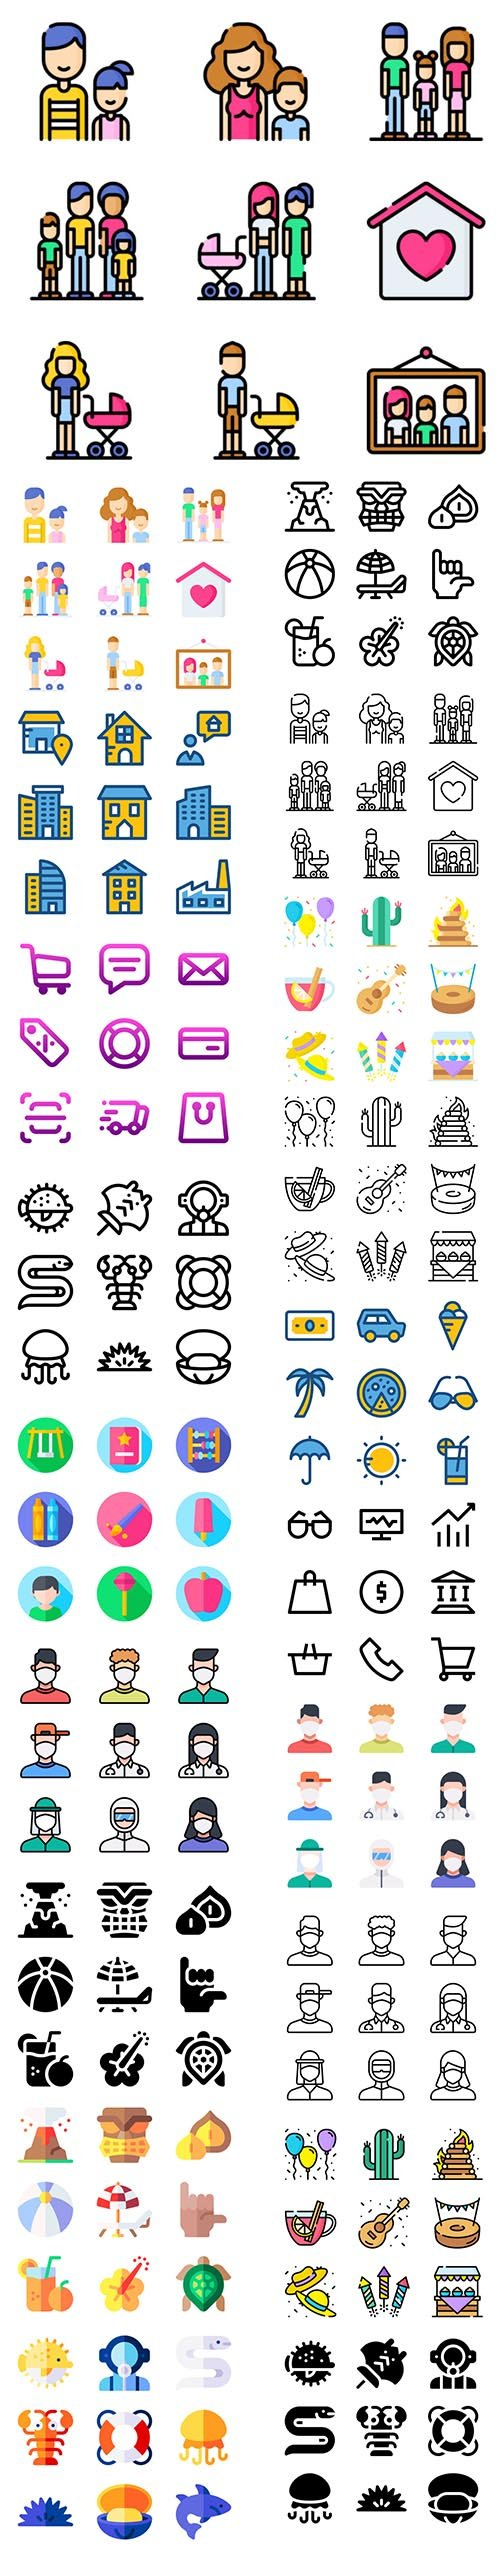 Big Icons Various Pack - More 800 Icons!